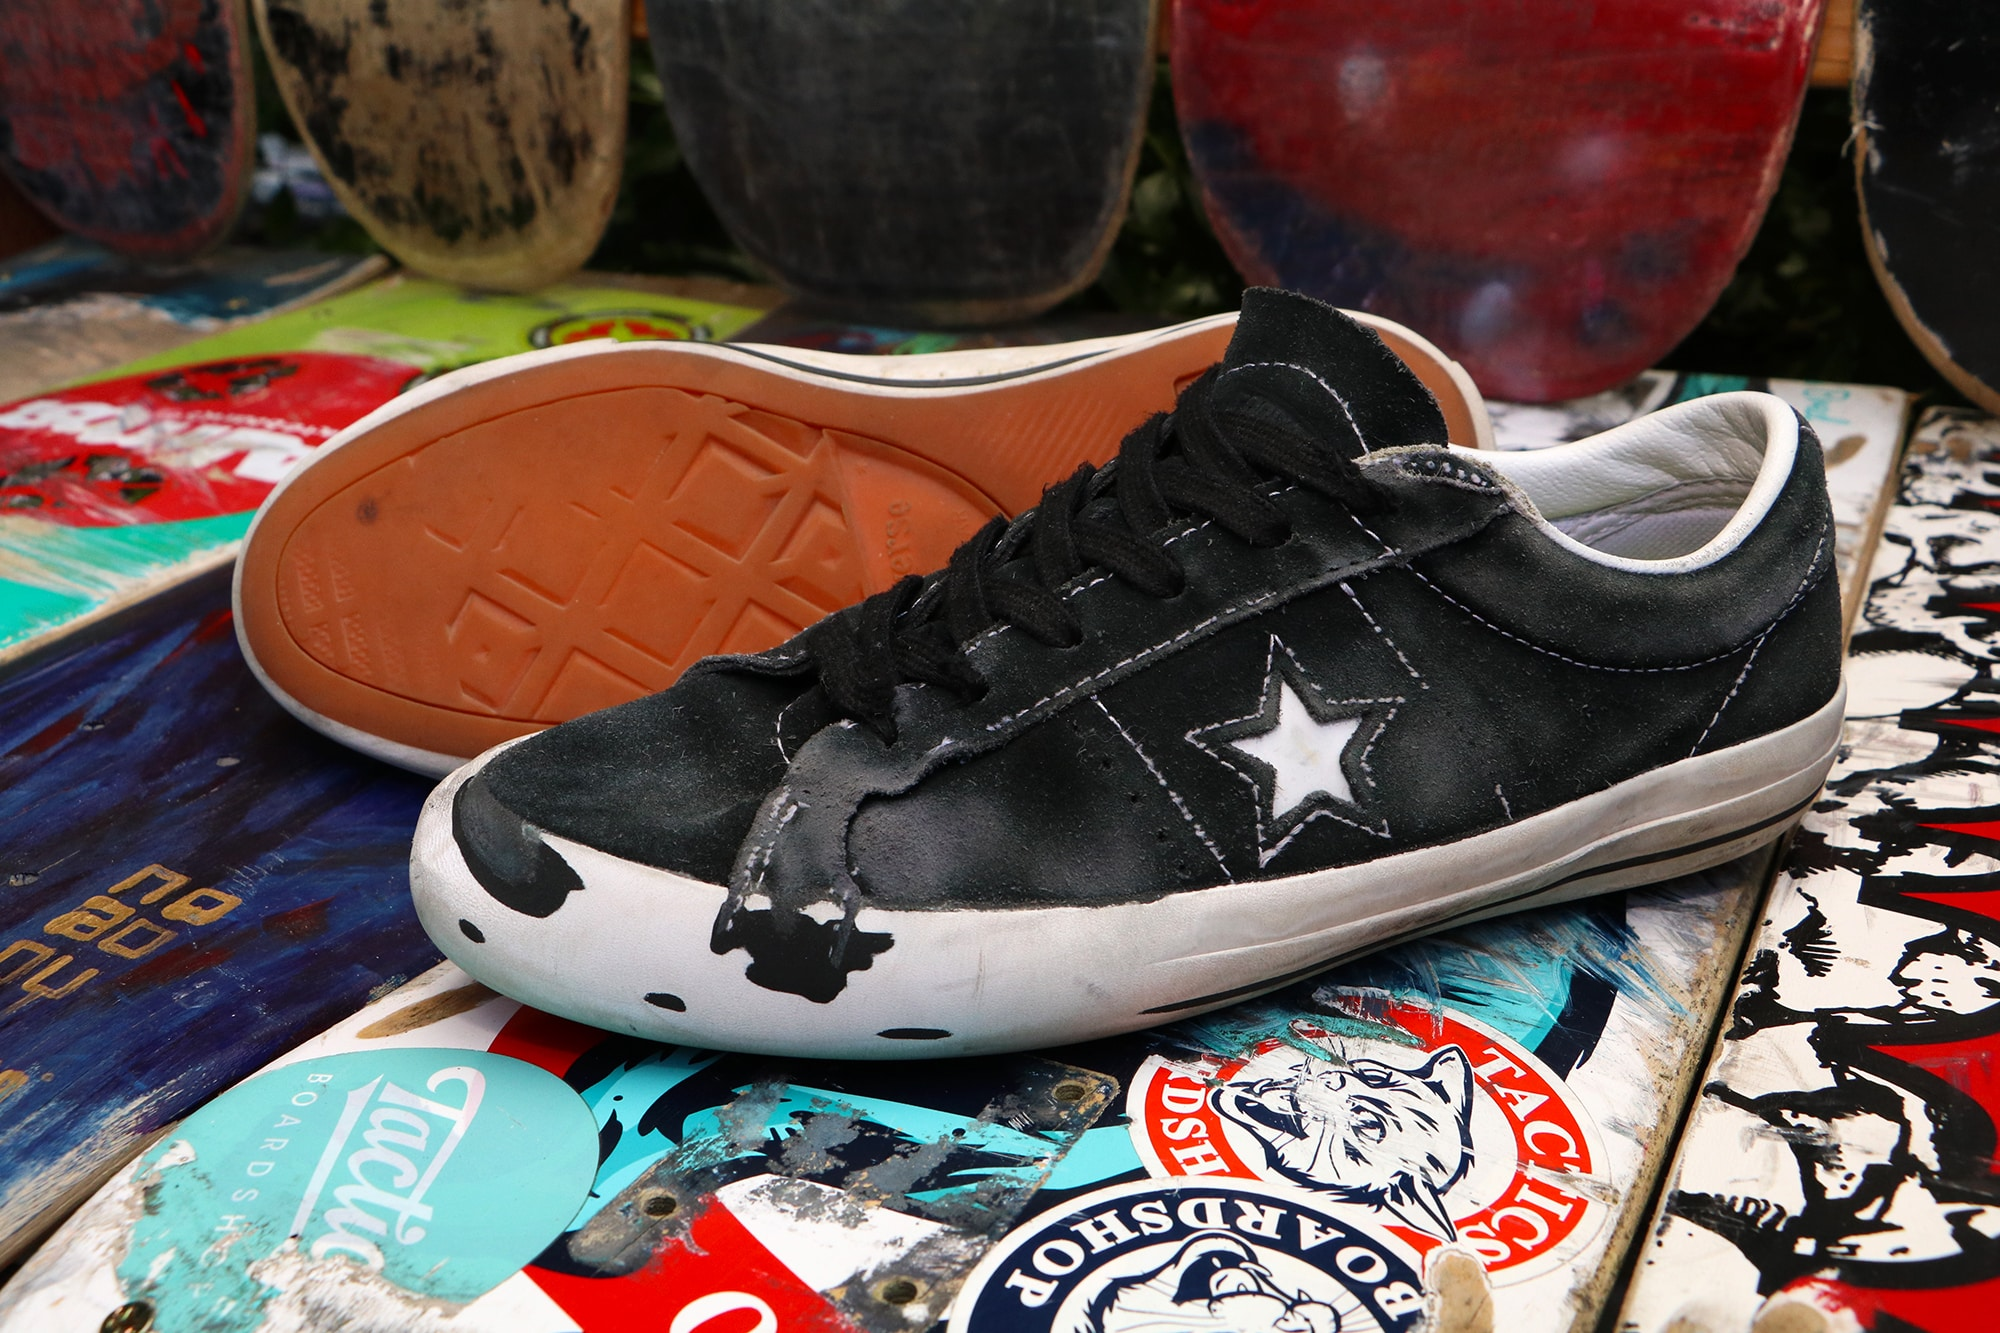 converse one star pro review